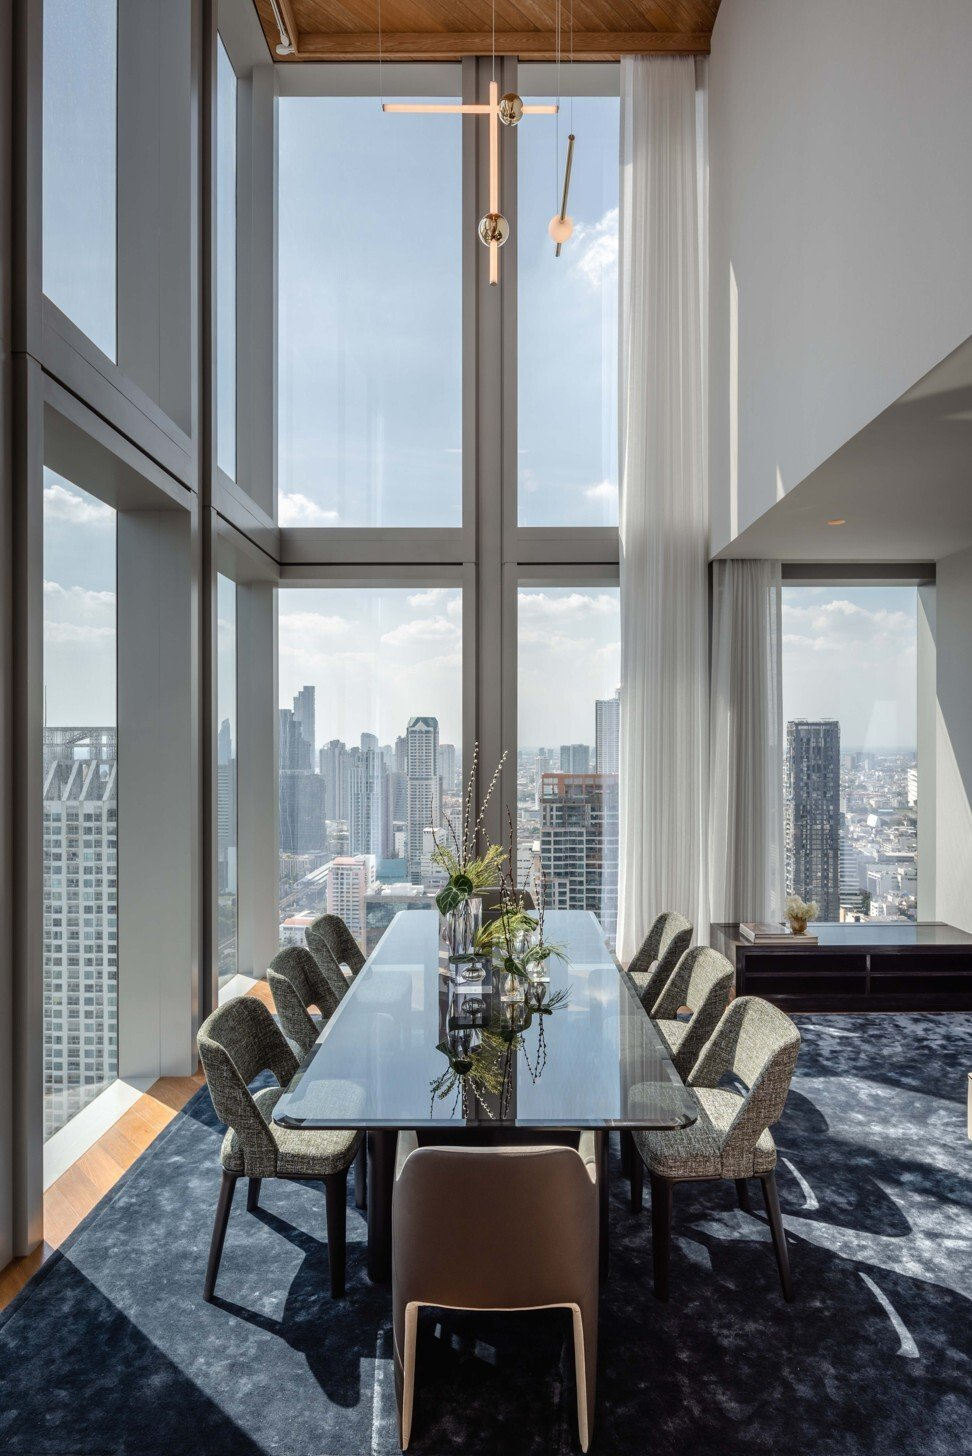 Foreign buyers are taking advantage of promotions on the last remaining residences at The Ritz-Carlton Residences, Bangkok. Photo: handout